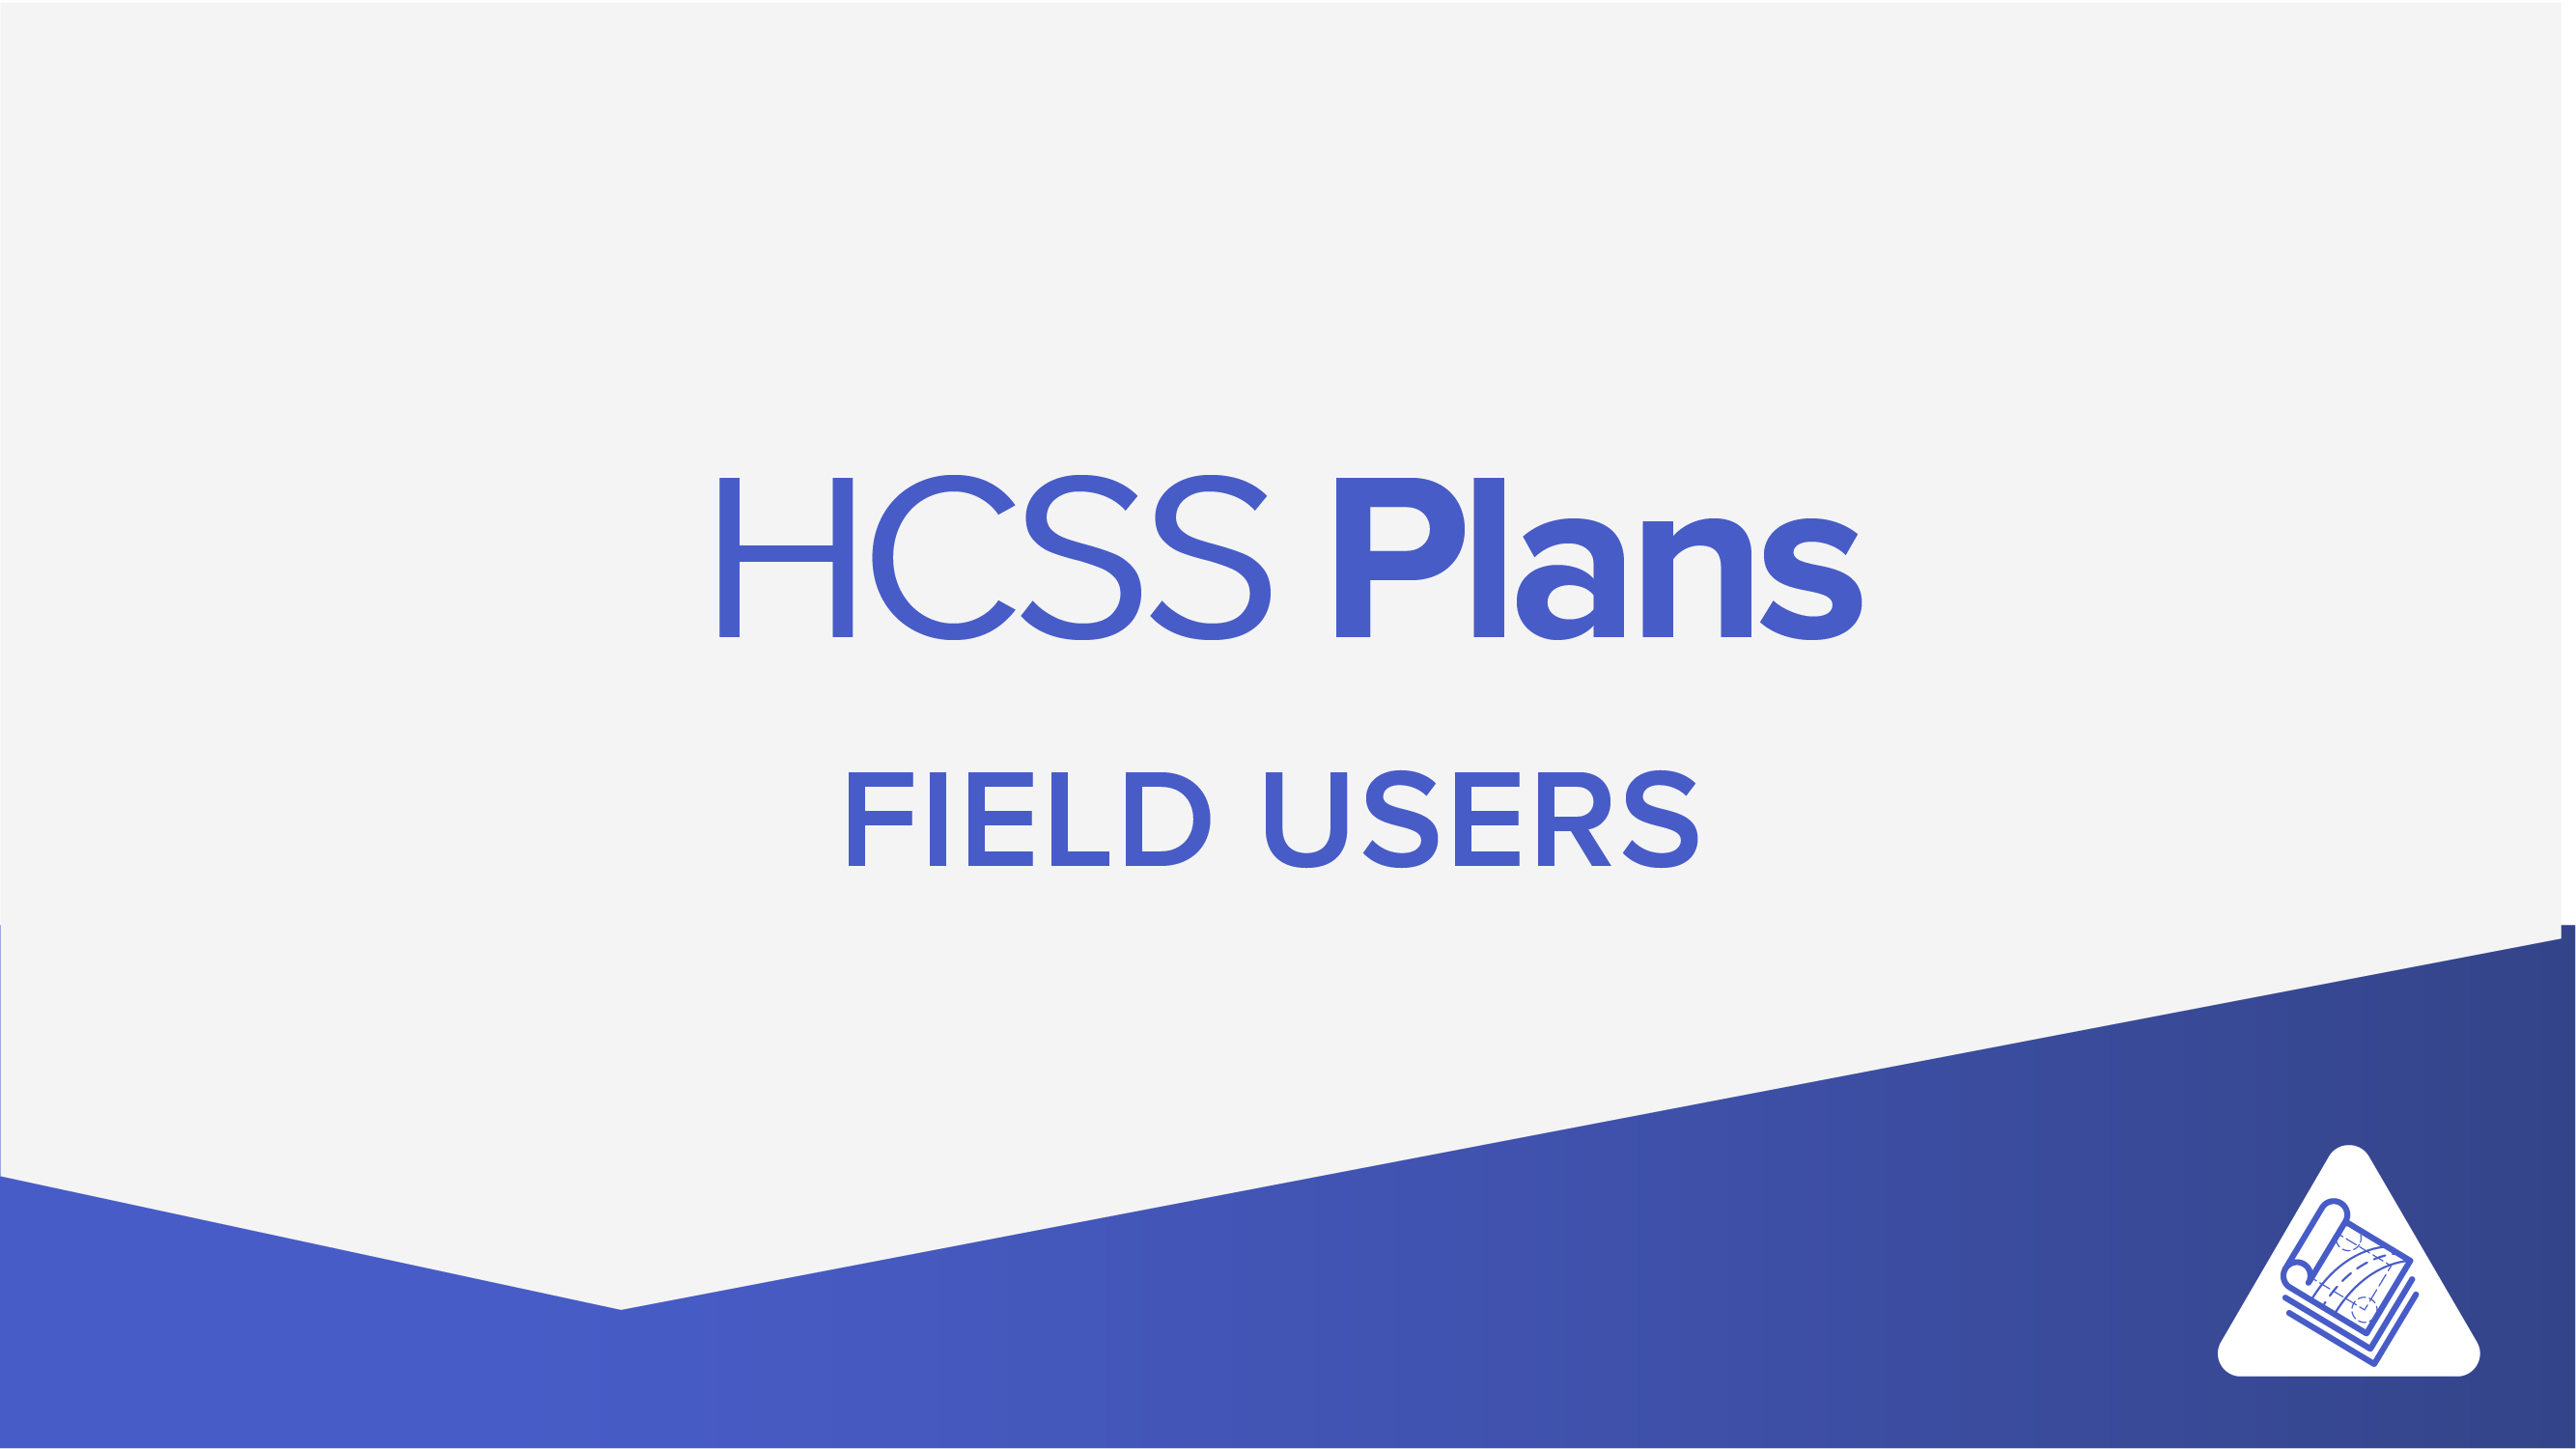 Introduction to HCSS Plans